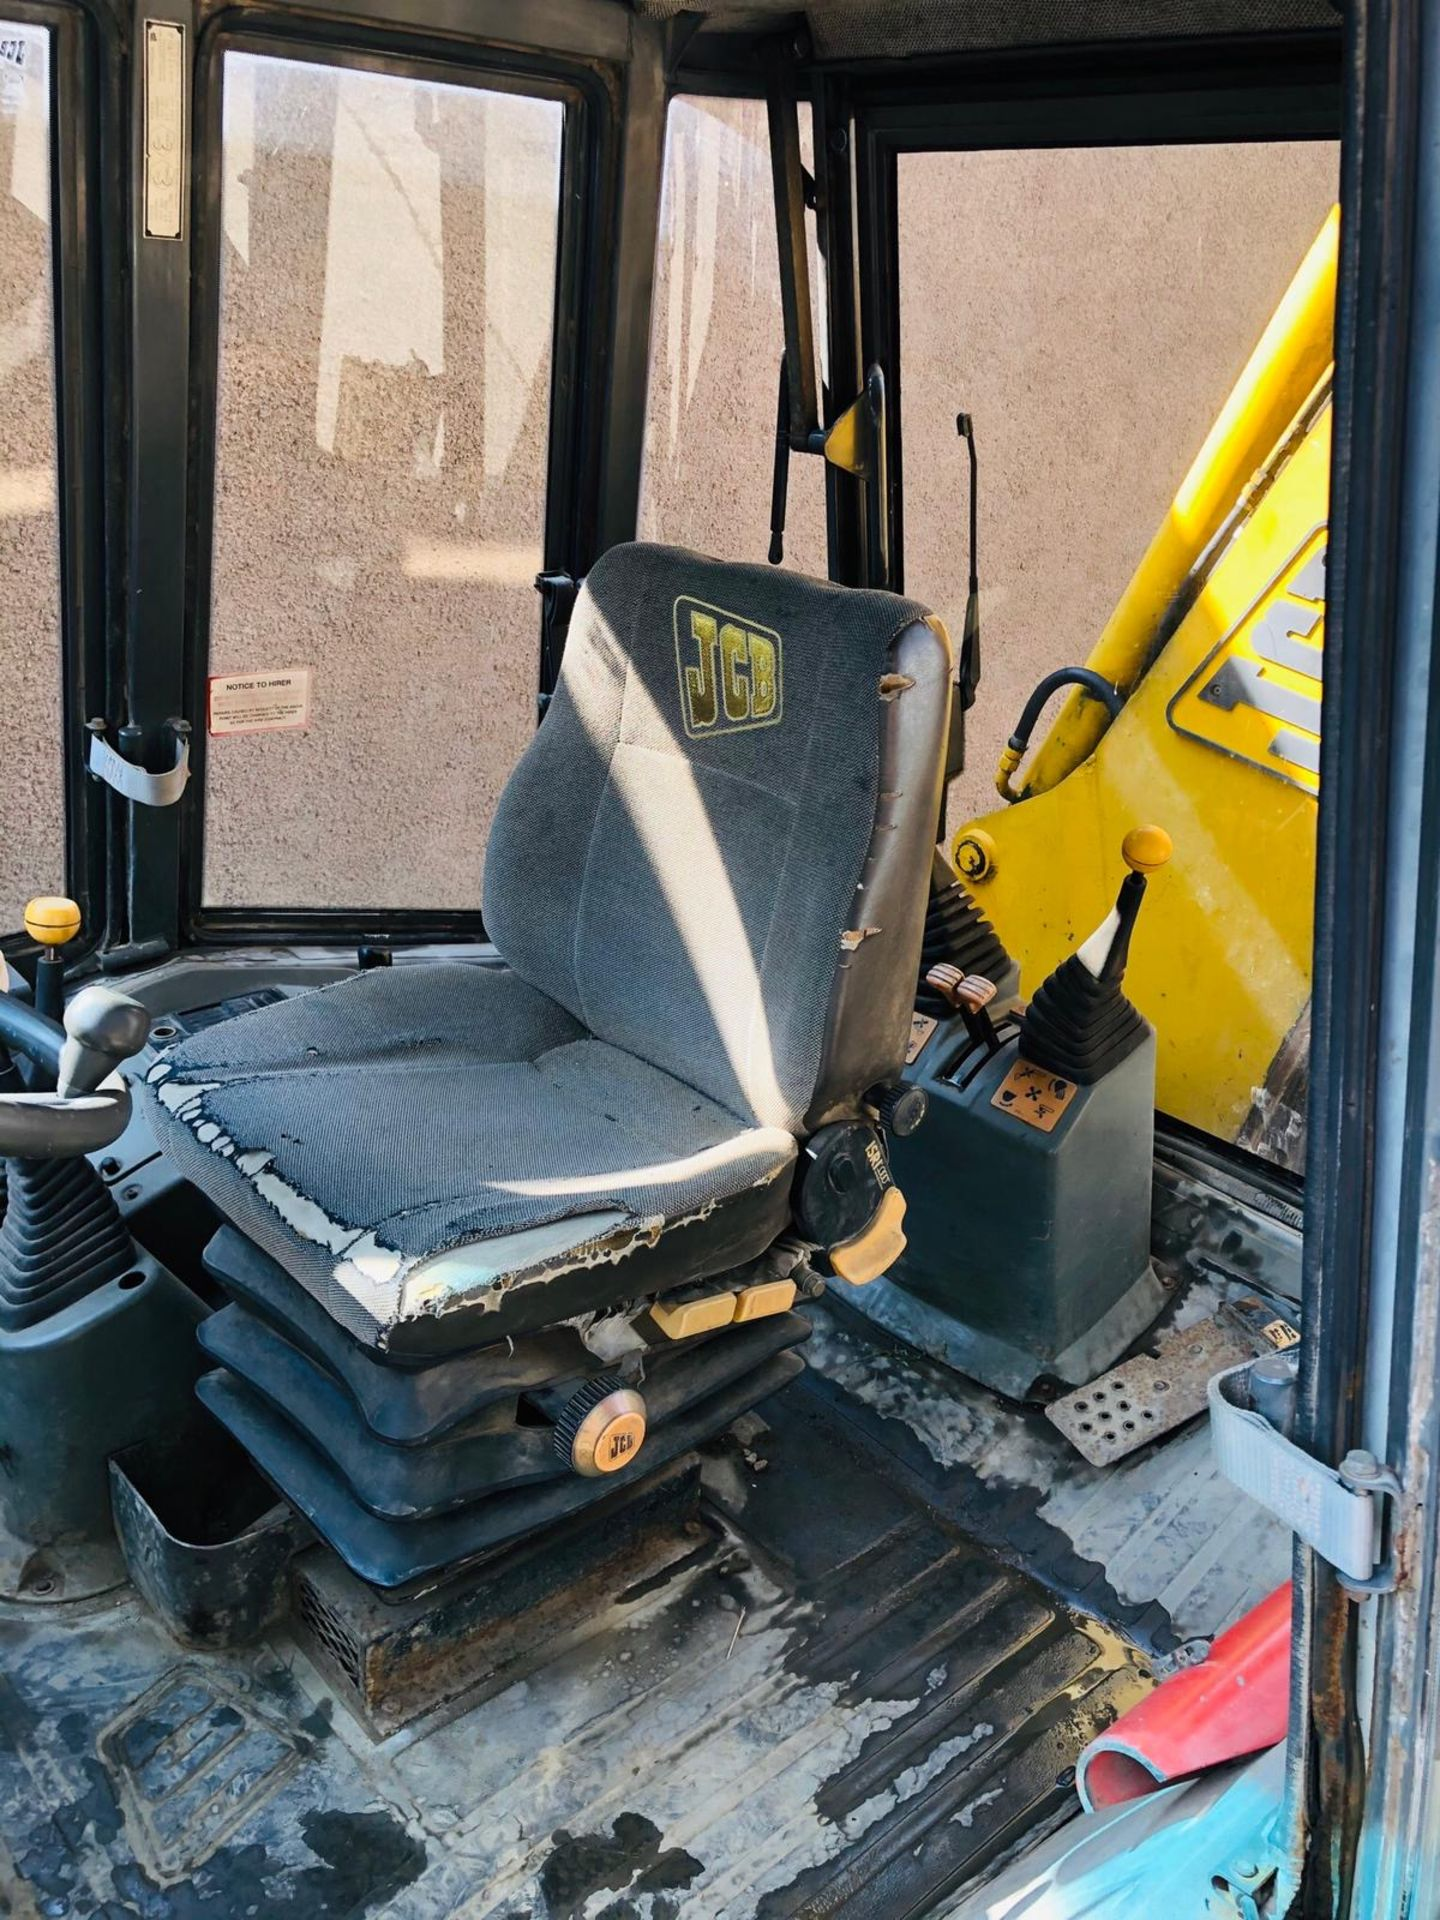 JCB 3CX PROJECT 8 DIGGER, 4X4, EXTRA DIG, C/W 3 BUCKETS, HOURS FROM NEW 7434 ONLY *NO VAT* - Image 7 of 16